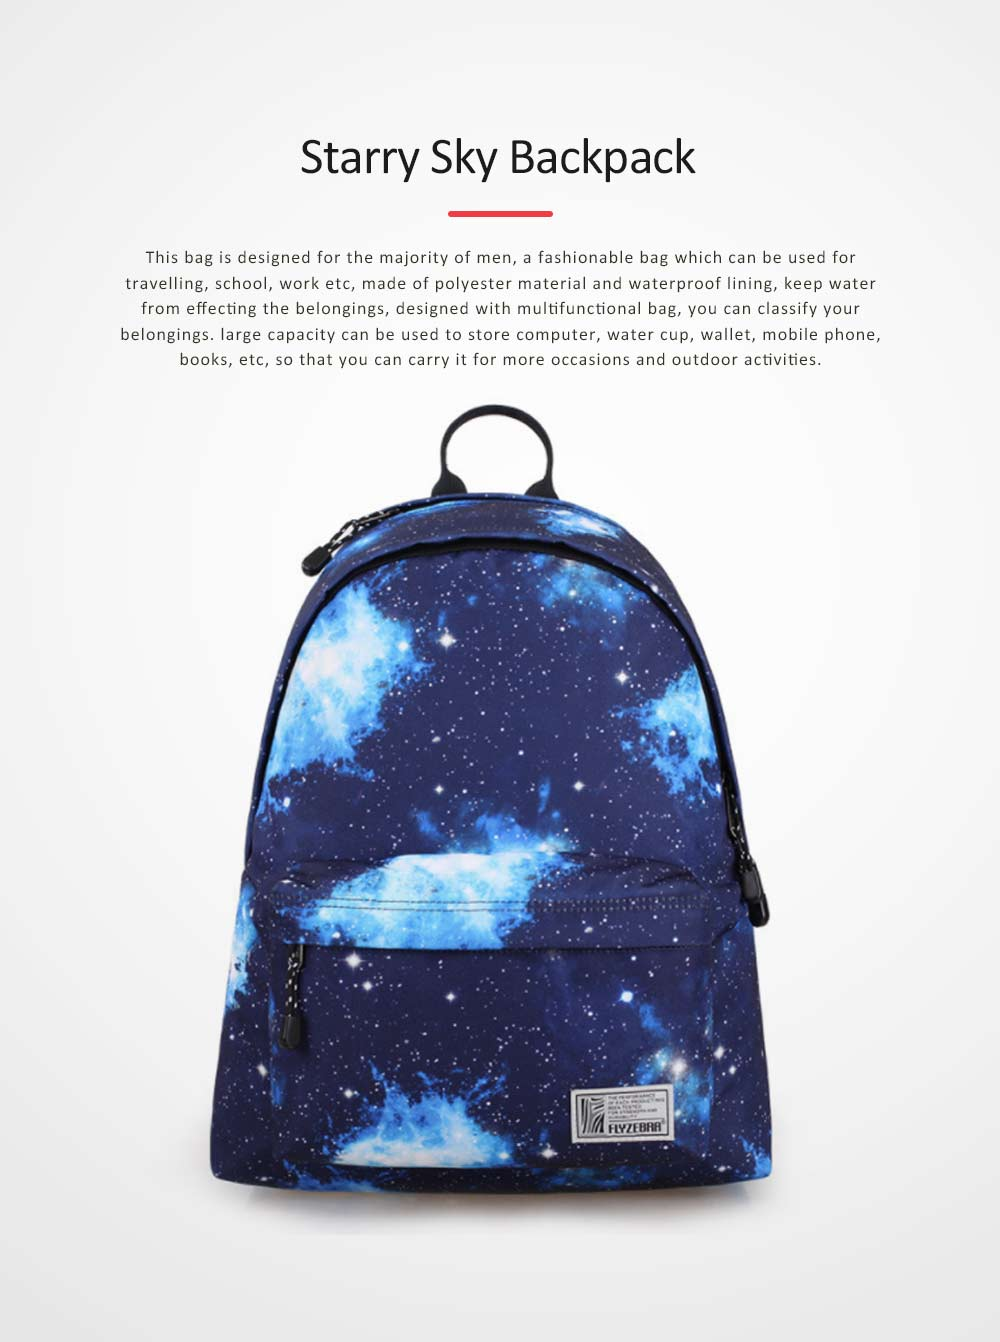 Starry Sky Backpack with Superior SBS Zipper, Fashionable Laptop Backpack for Traveling, Outdoors Shopping 0